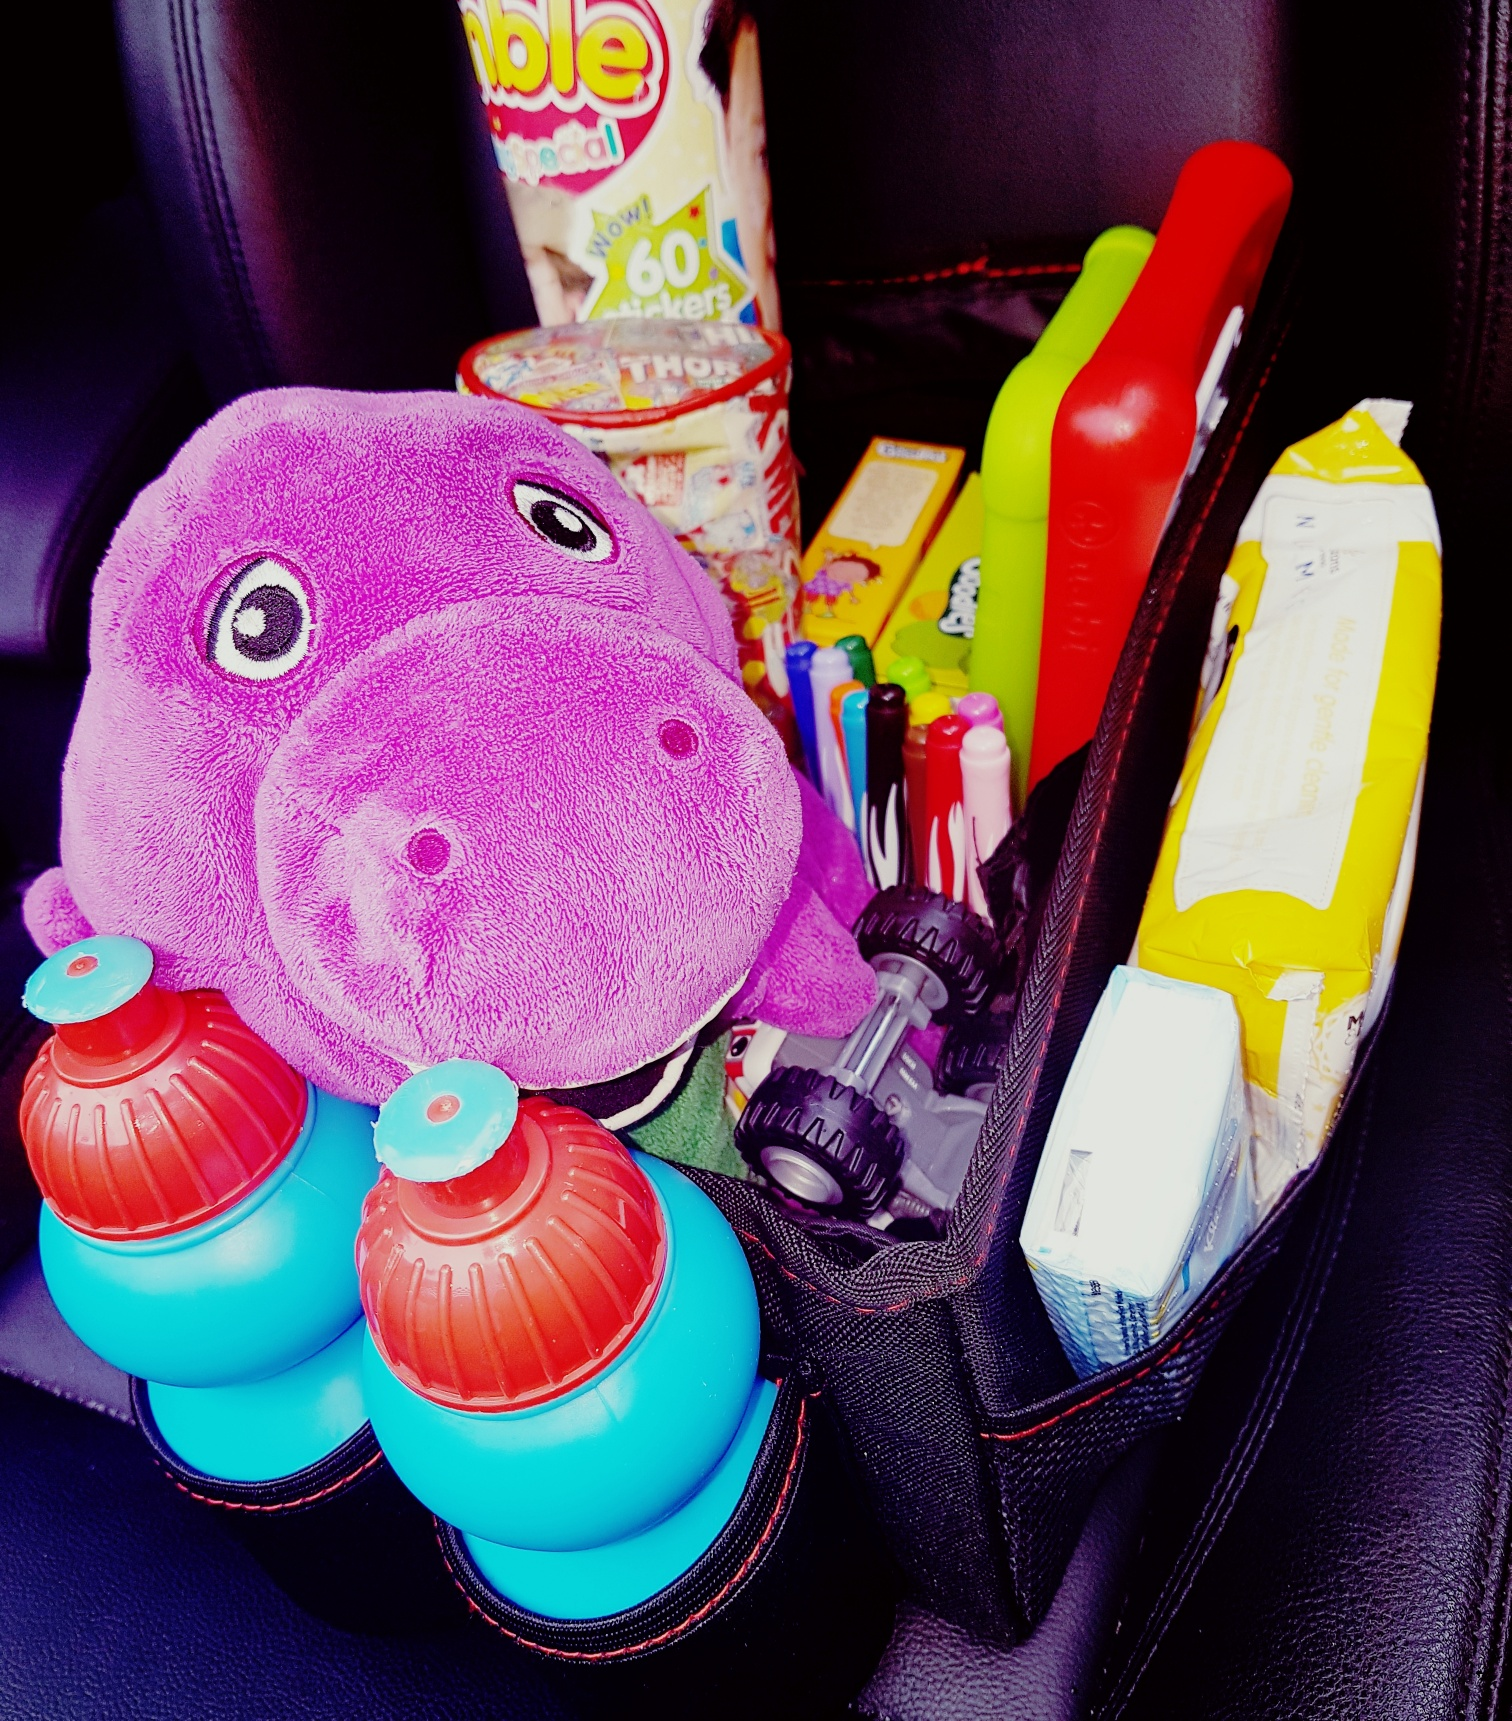 travel tidy for the car